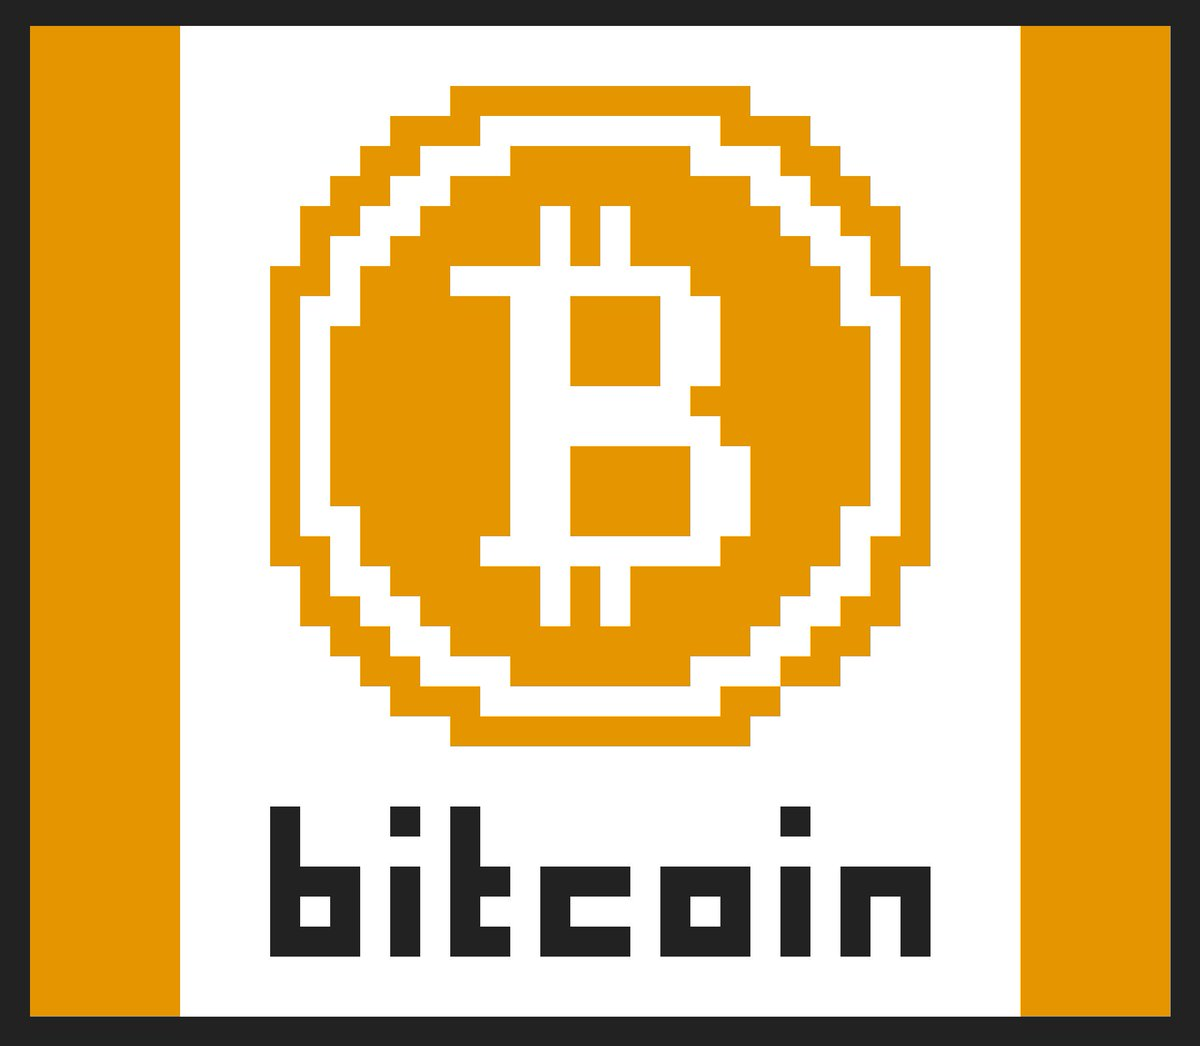 Bitcoin art gallery on twitter current state of bitcoin symbol bitcoin art gallery on twitter current state of bitcoin symbol on httpsti1let4yjpv biocorpaavc Choice Image